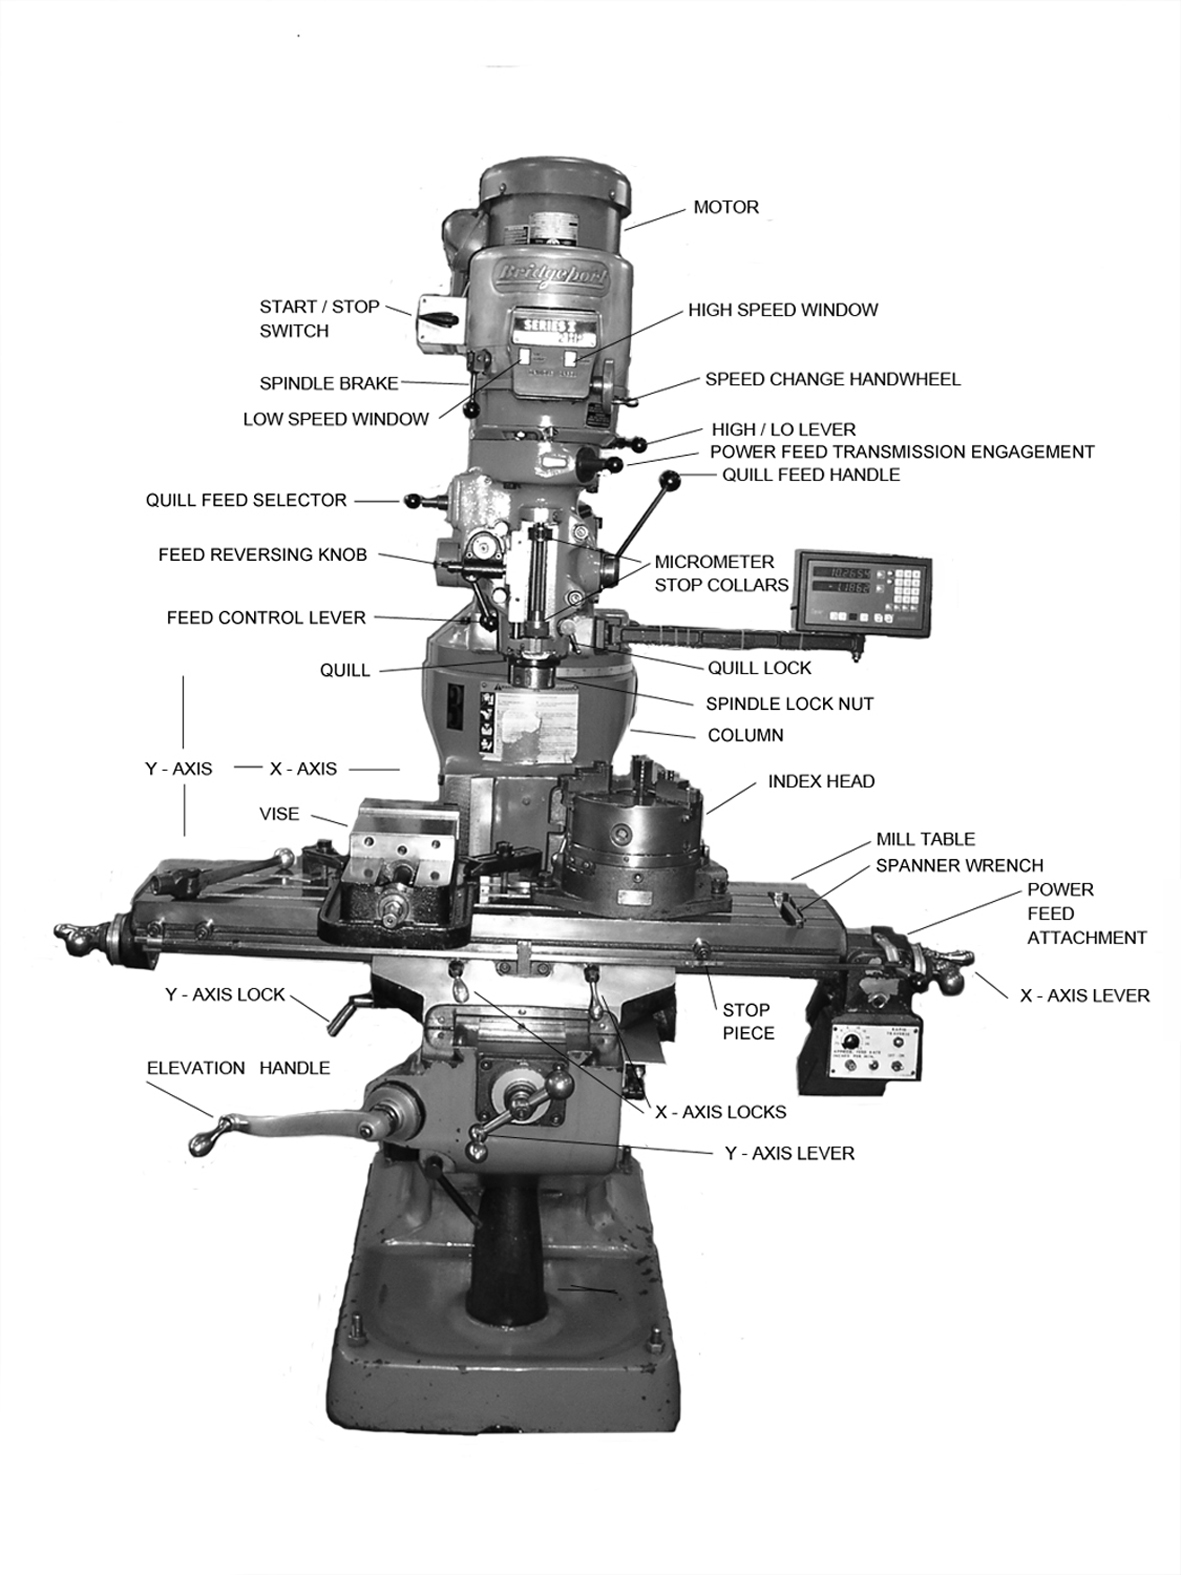 milling machine parts diagram best free home design idea inspiration